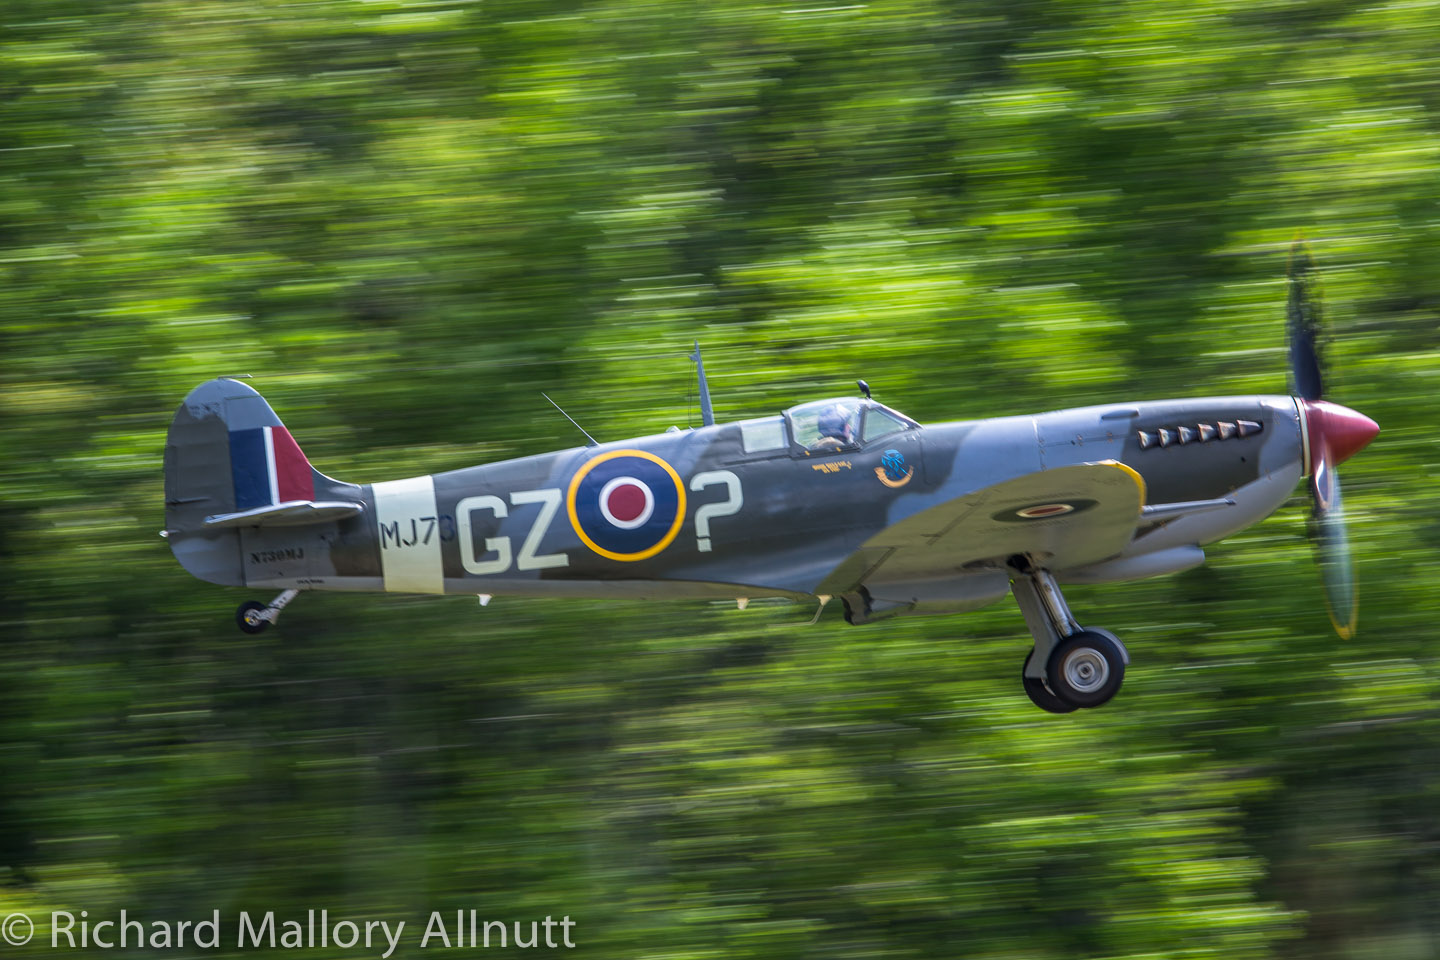 _C8A0169 - Richard Mallory Allnutt photo - Warbirds Over the Beach - Military Aviation Museum - Pungo, VA - May 17, 2014